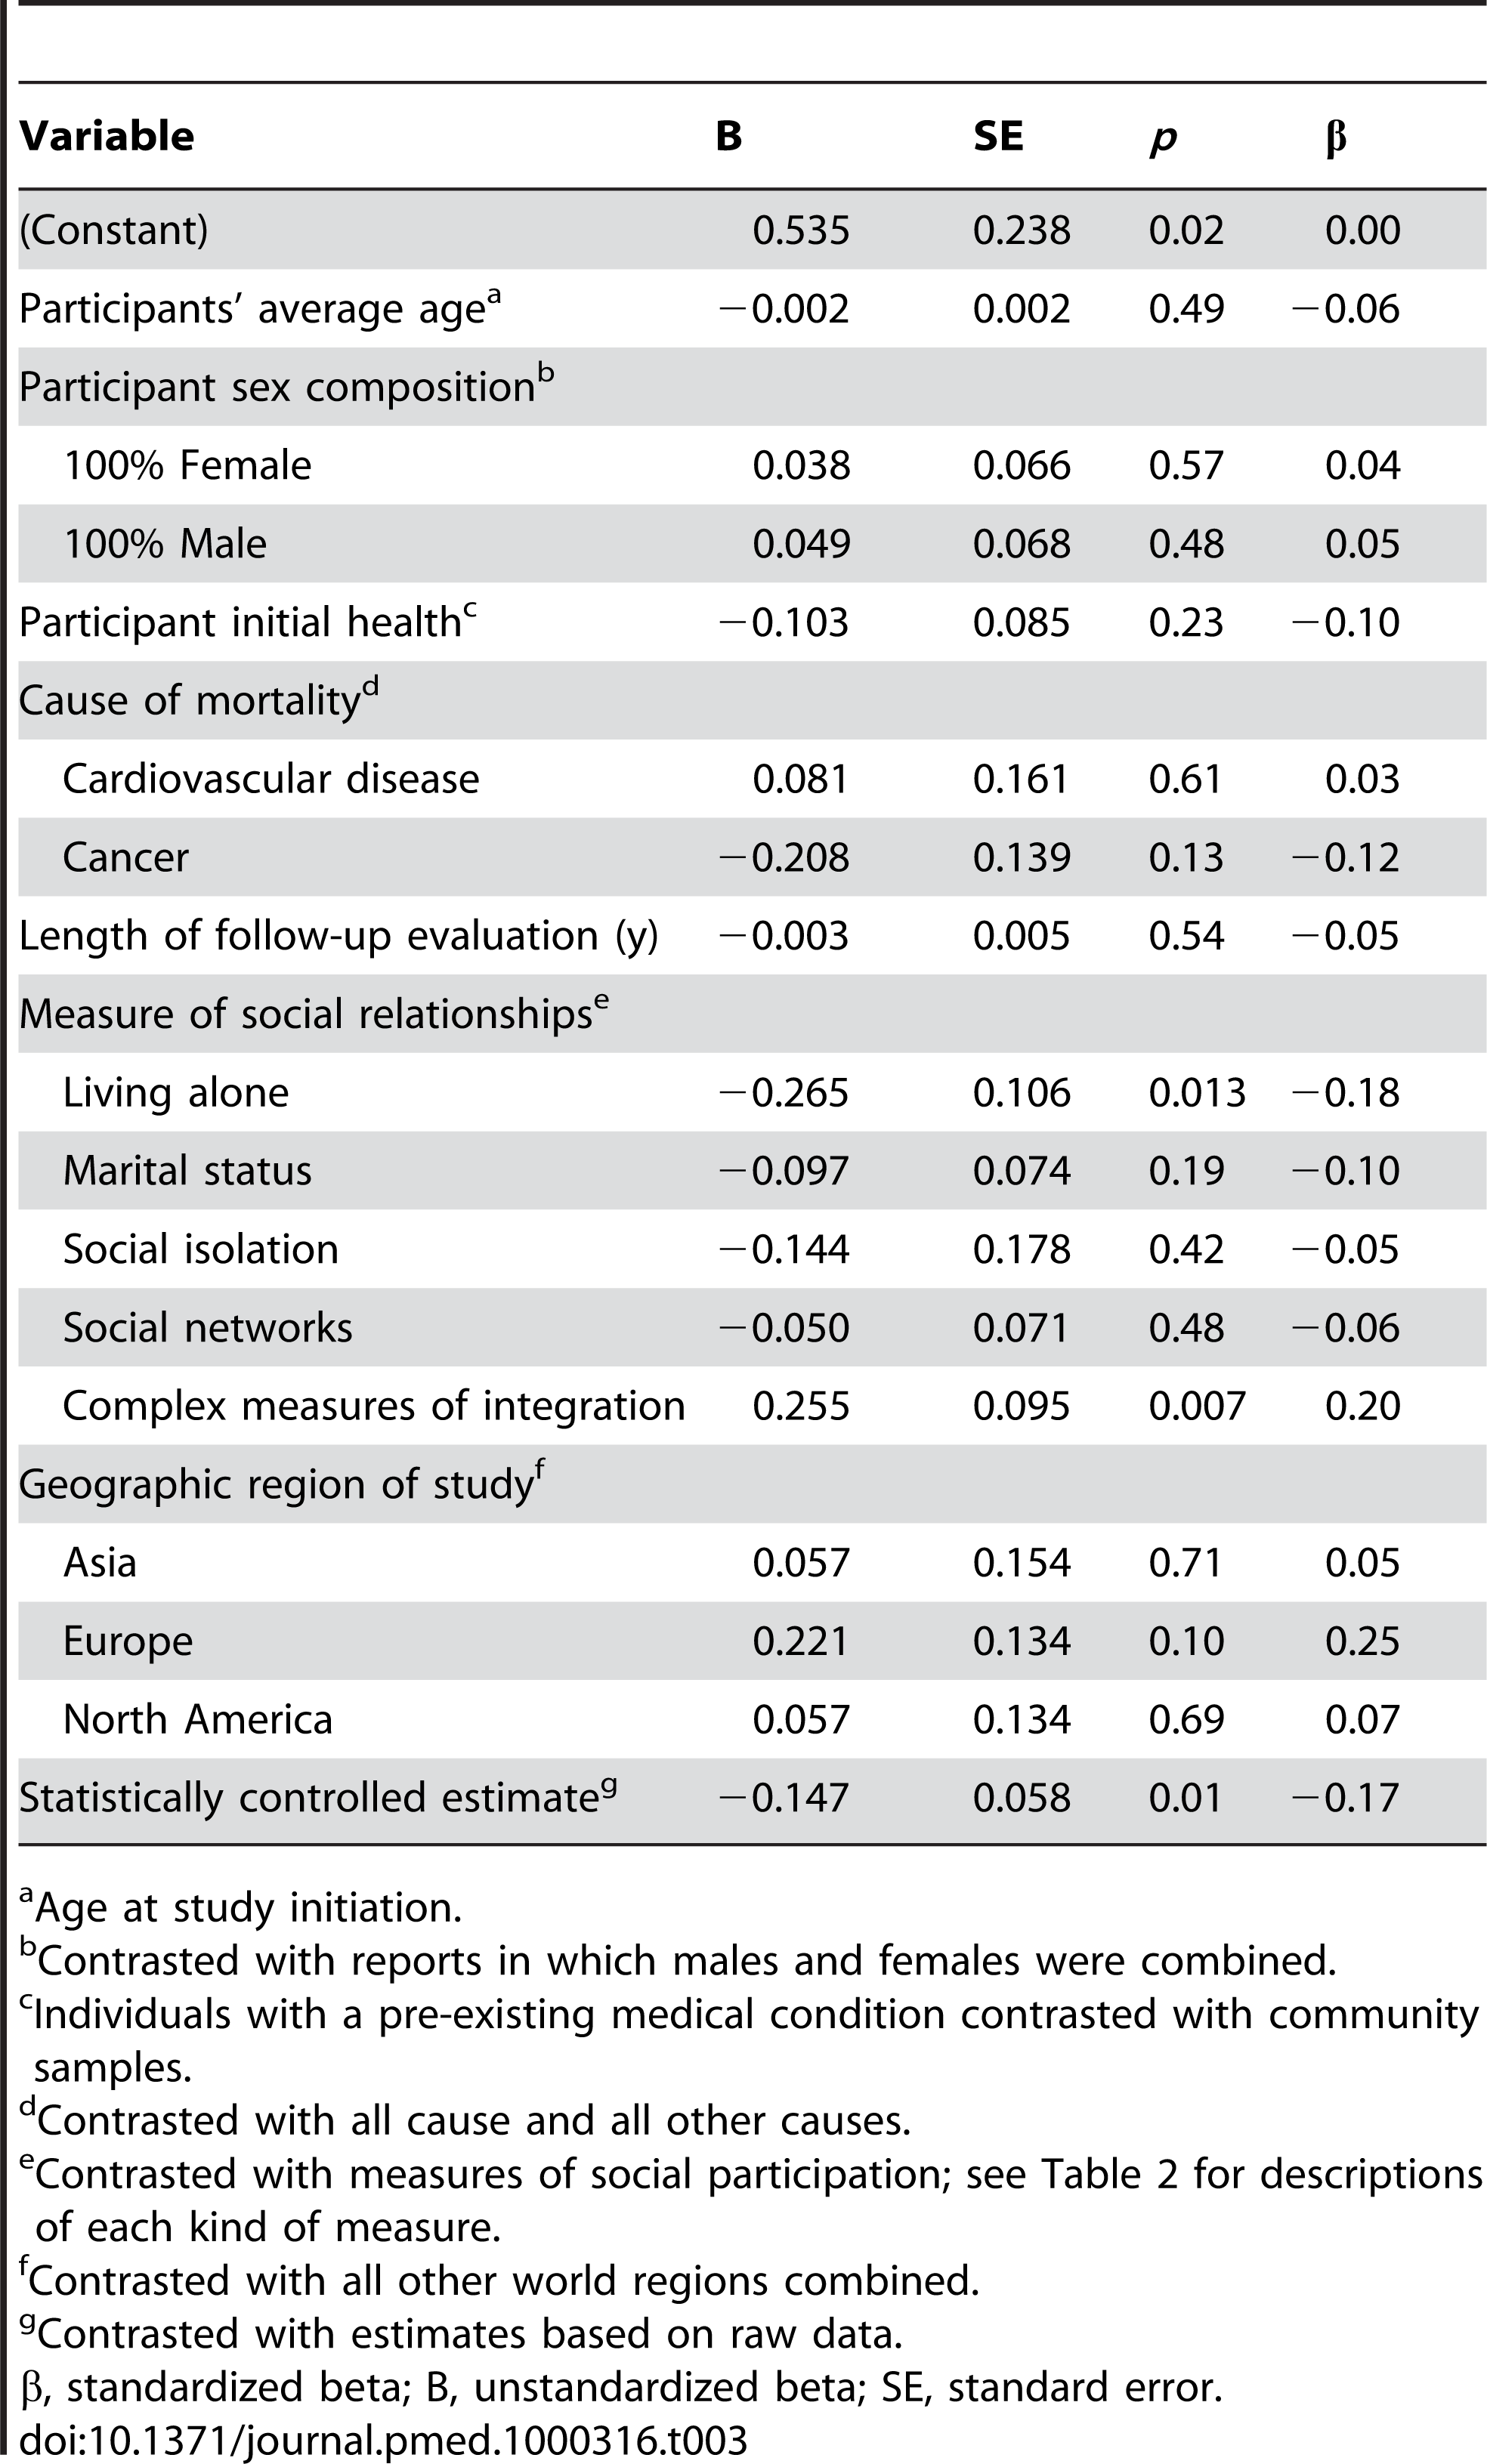 Weighted average effect sizes across different measures of social relationships.